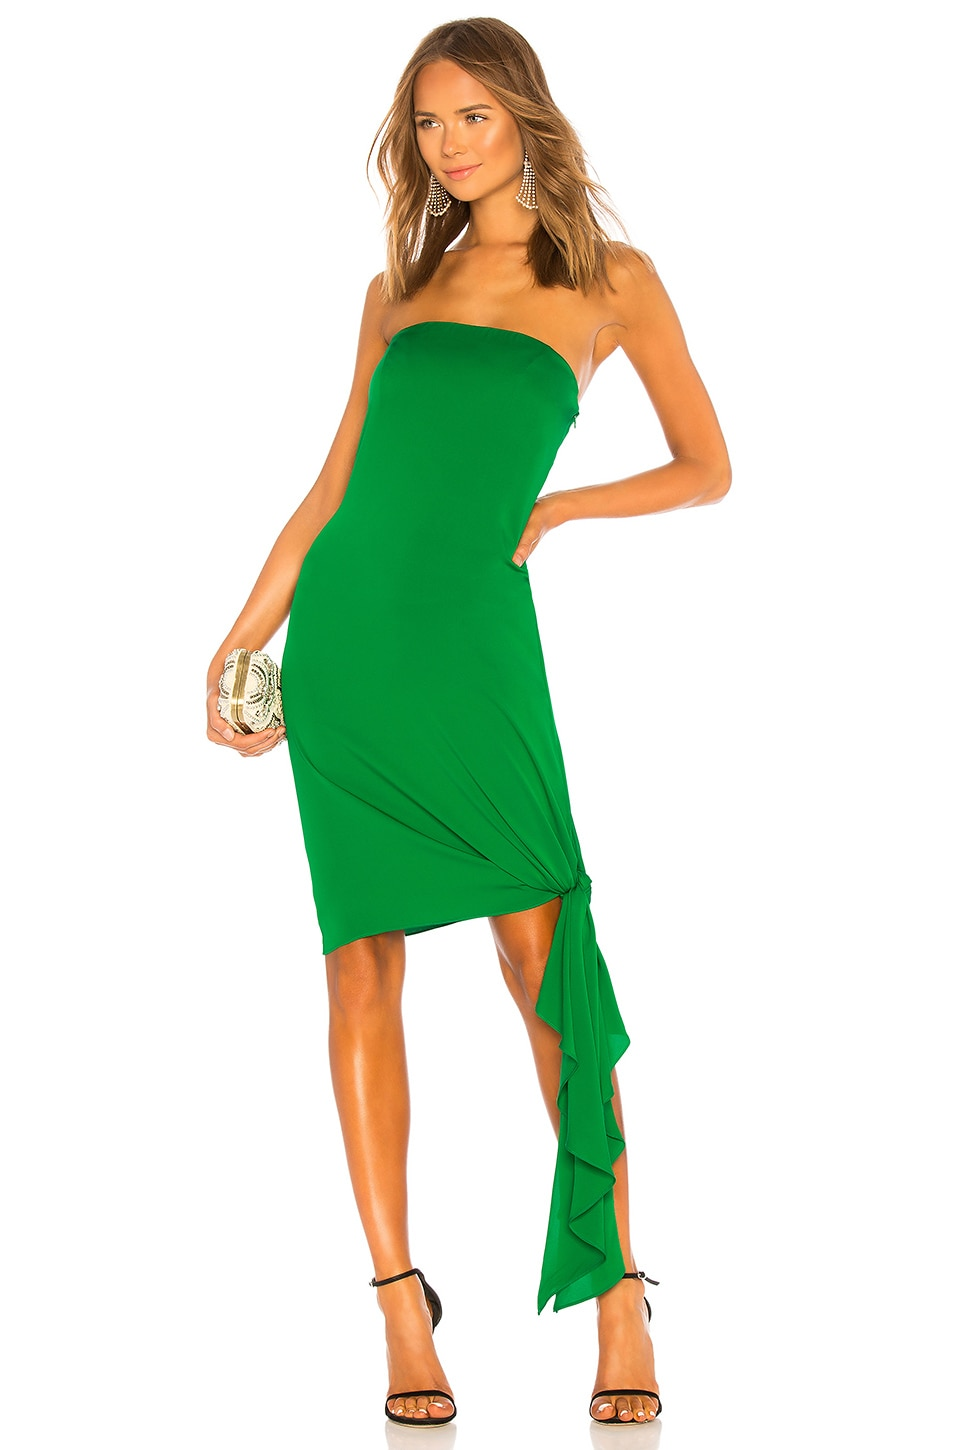 MILLY Callie Dress in Emerald